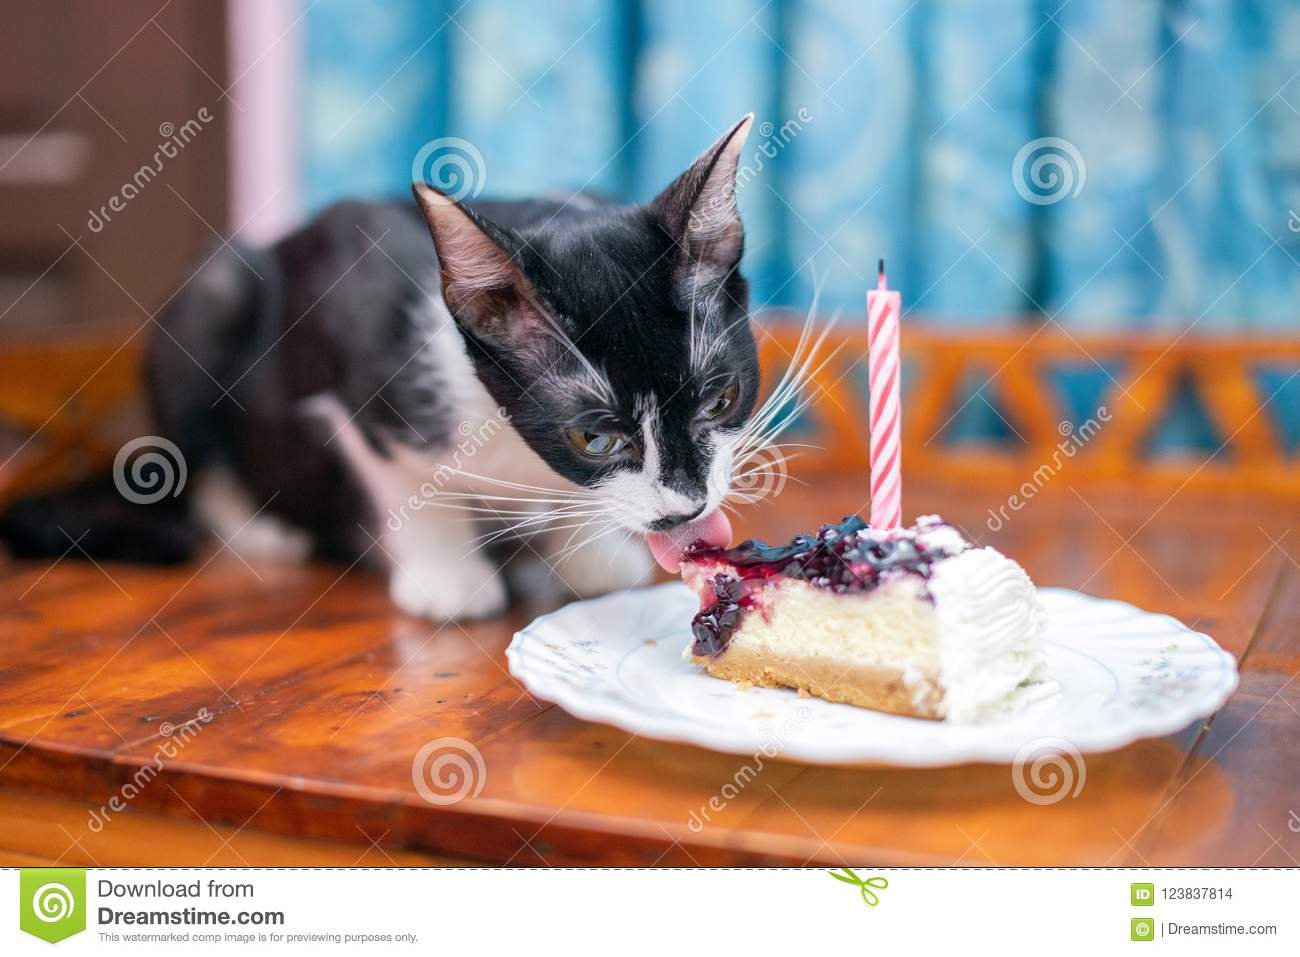 A Cat Licks Her First Birthday Cake